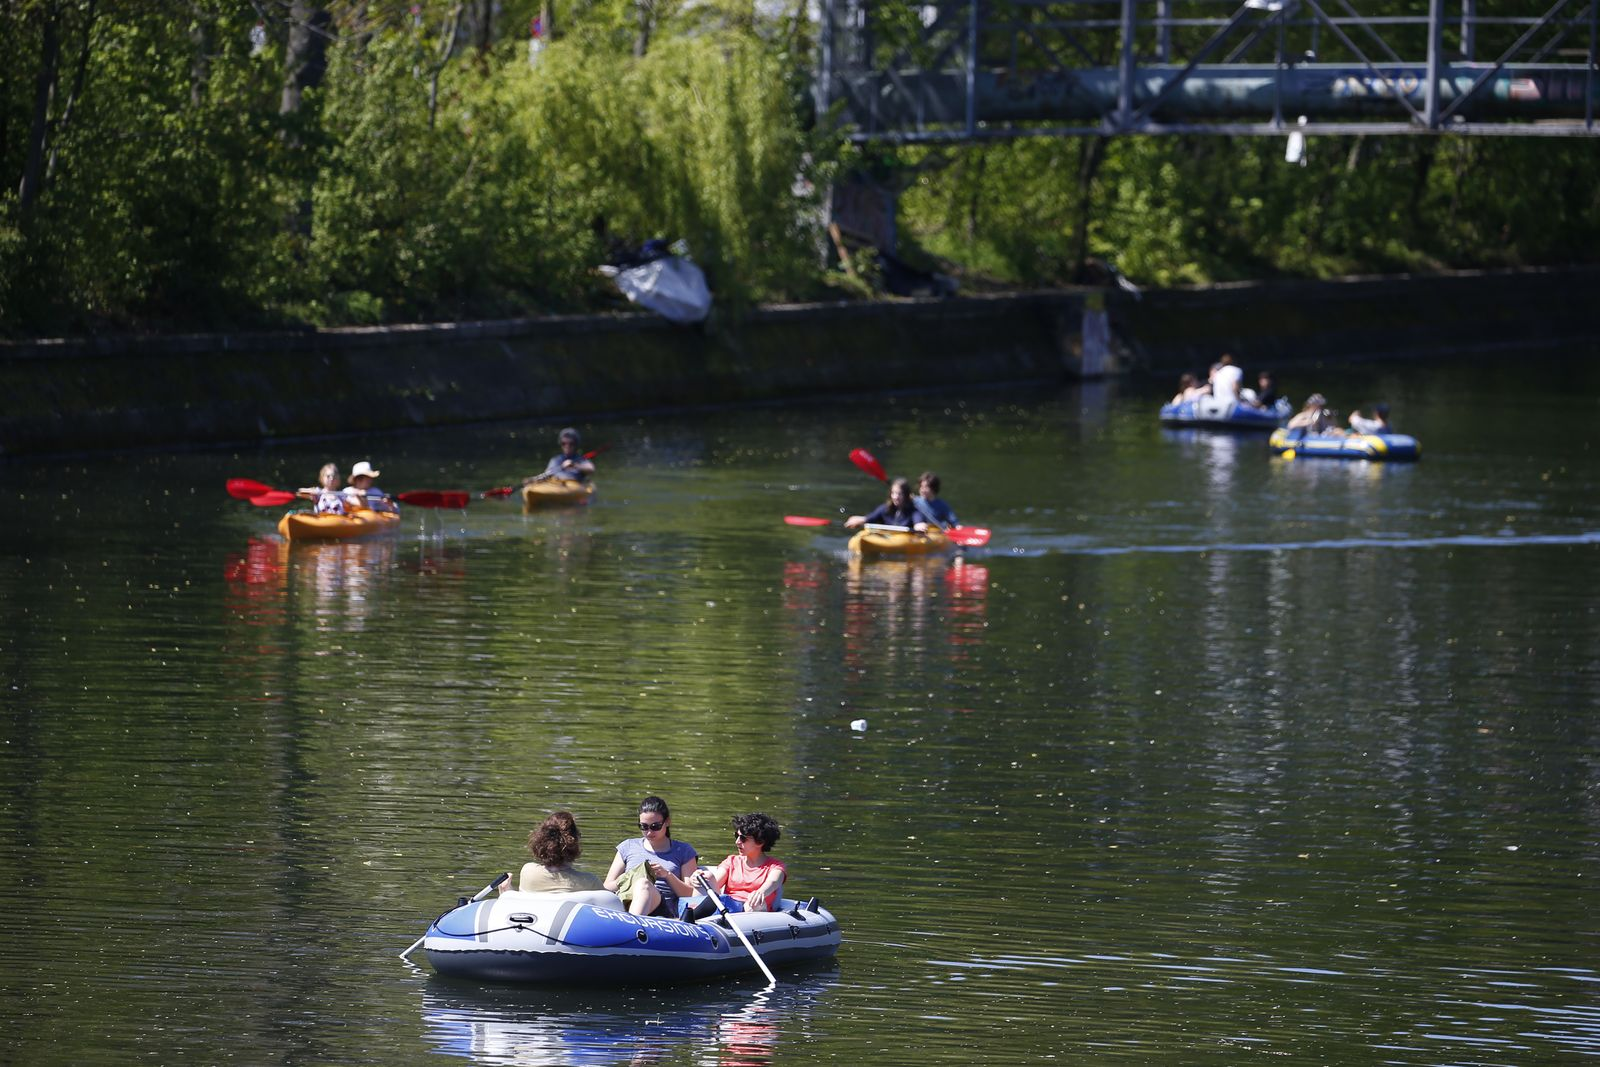 People Flock Outdoors In Spring Weather As Pandemic Eases